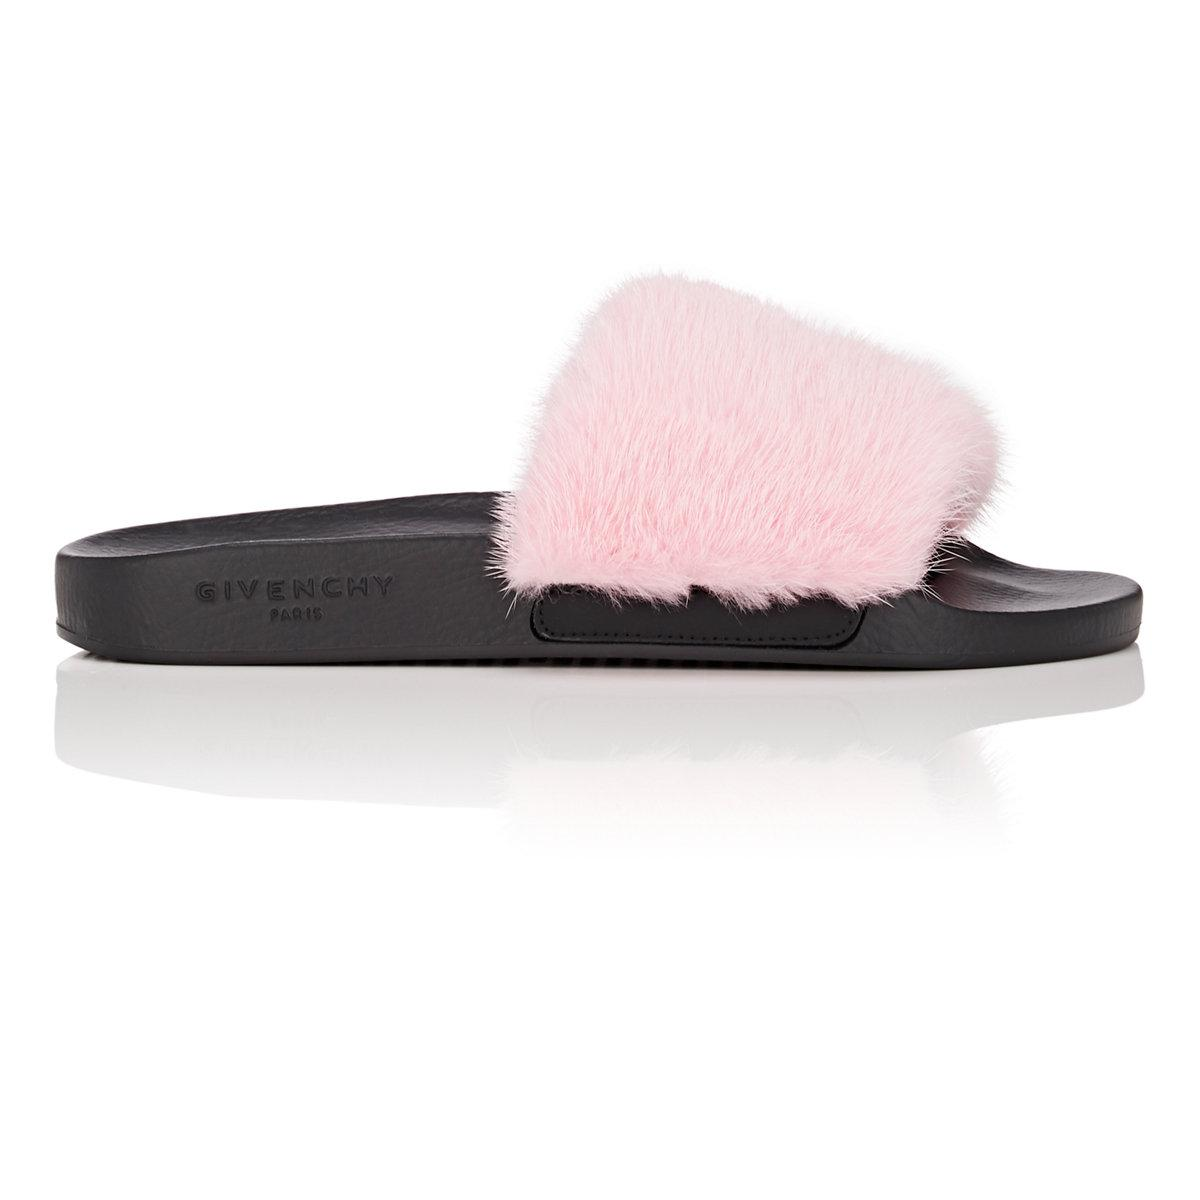 3b0a9abb3f65 Lyst - Givenchy Mink Fur Slide Sandals in Pink